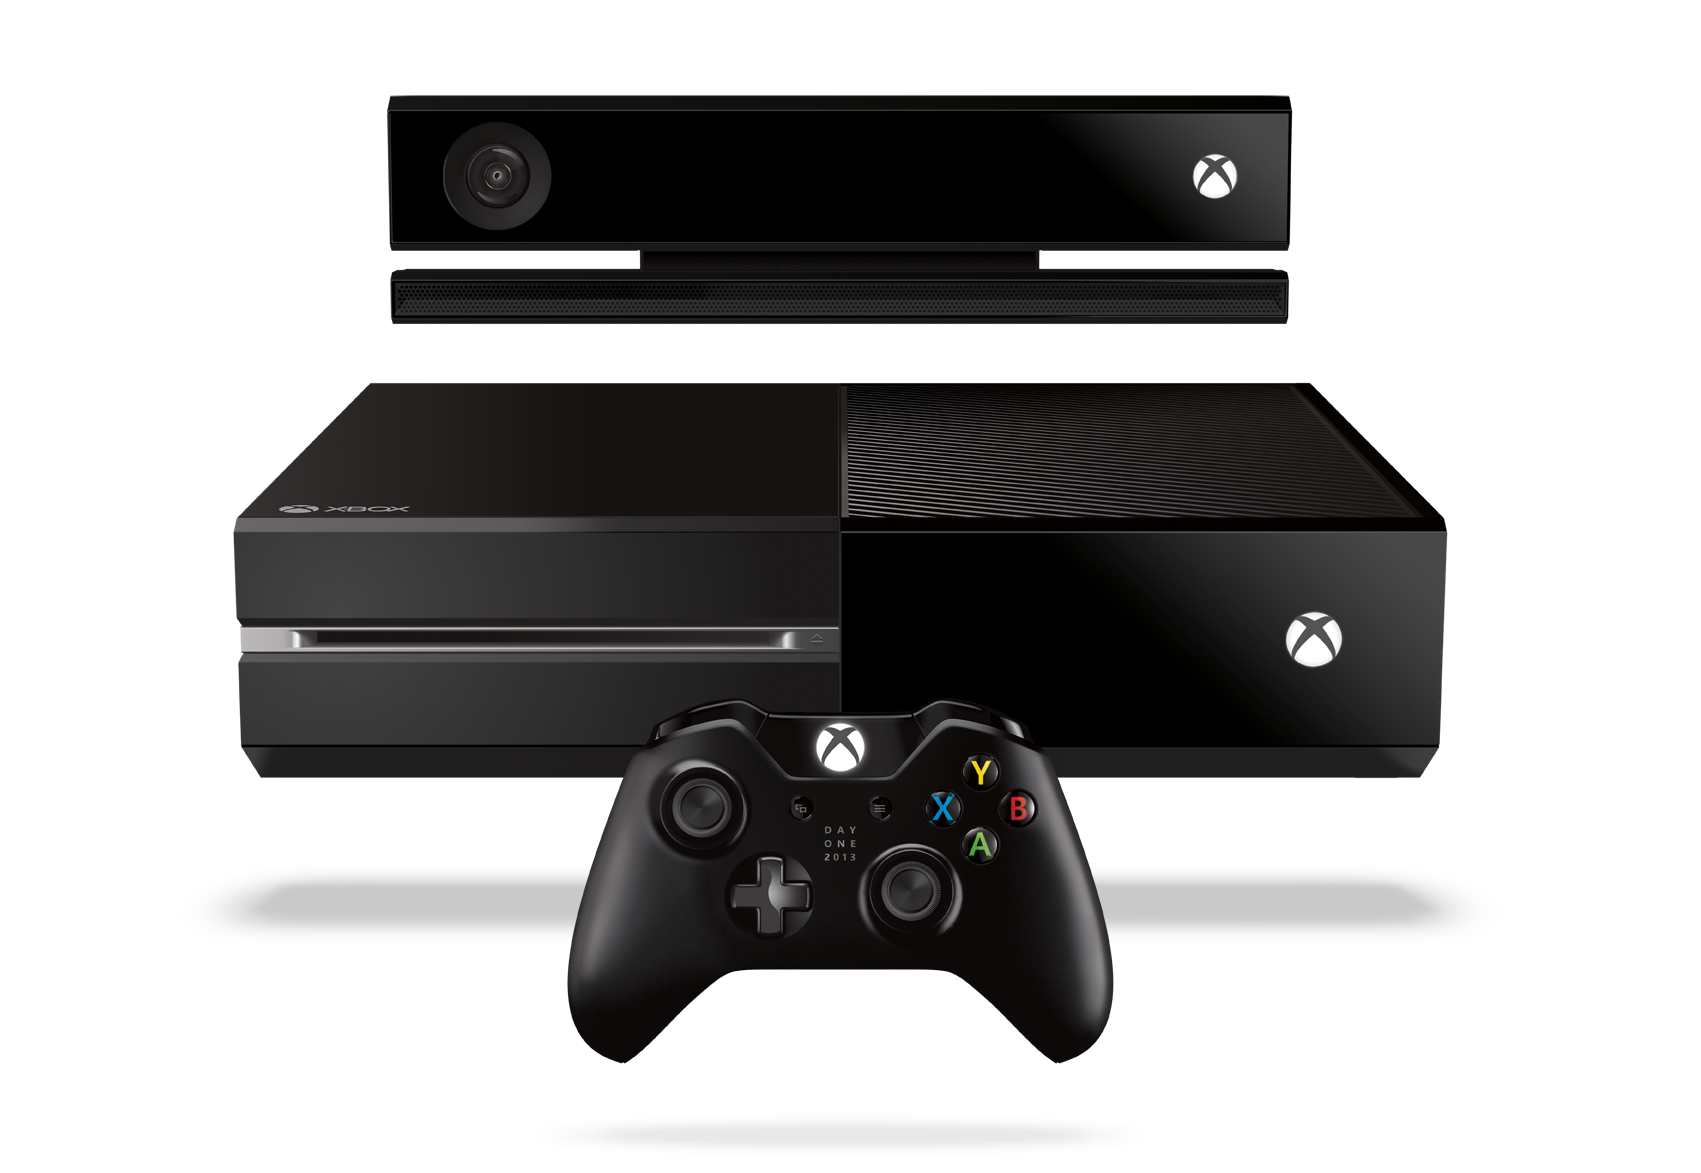 XboxOne DayOne Consle Sensr controllr F TransBG RGB 2013 An occasional gamers guide to buying a next gen console: Xbox One